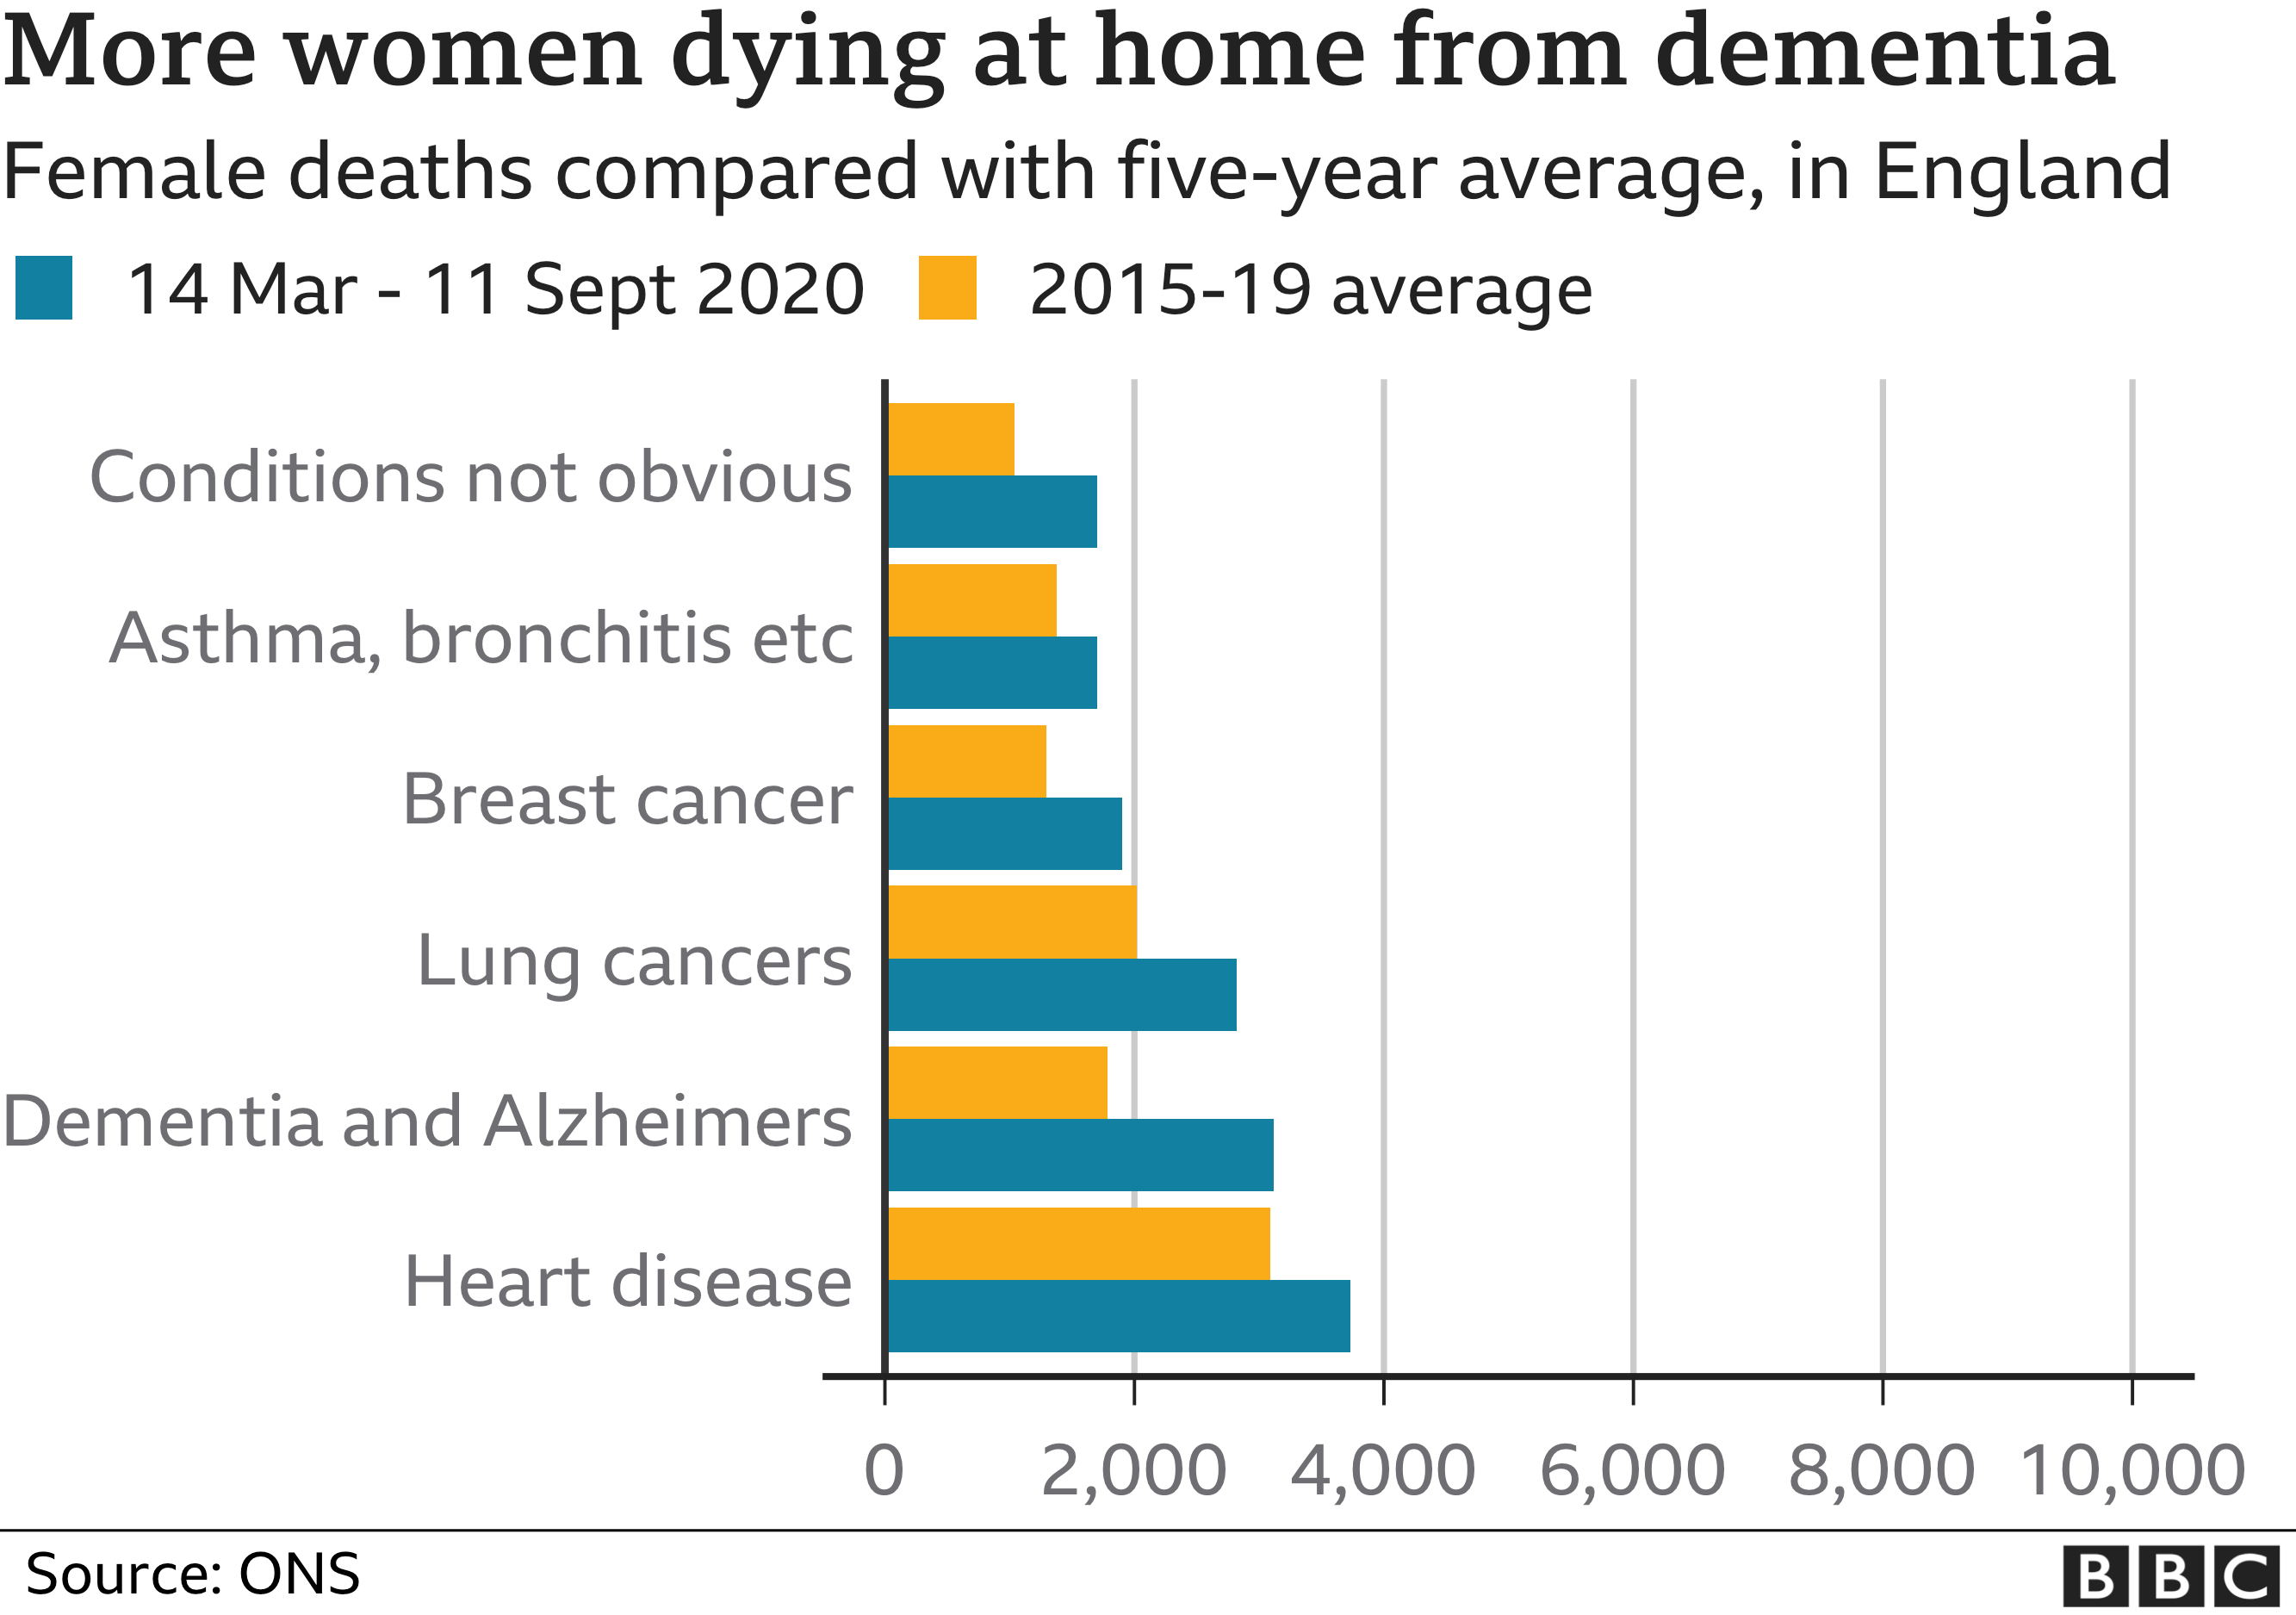 More women than normal dying in their own homes from non-Covid illnesses in England